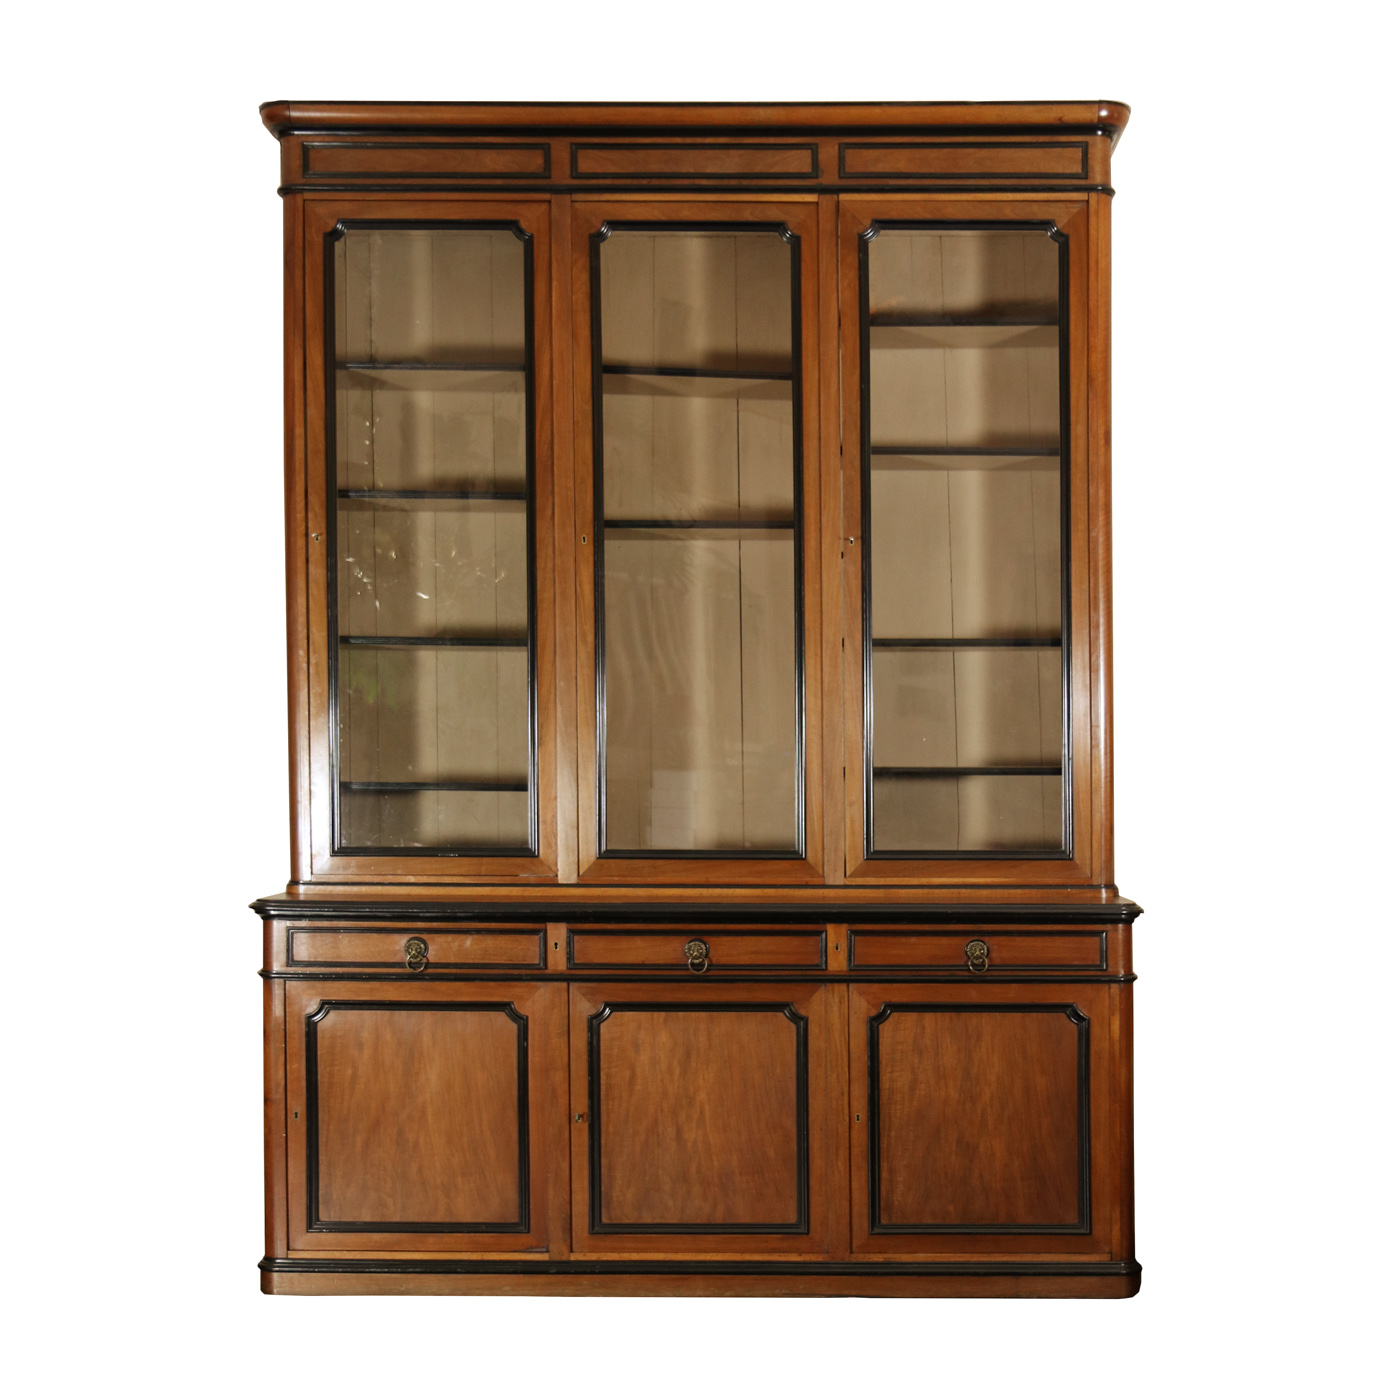 very large french walnut bureau bookcase webonized trim original glazing circa 1860 garden. Black Bedroom Furniture Sets. Home Design Ideas